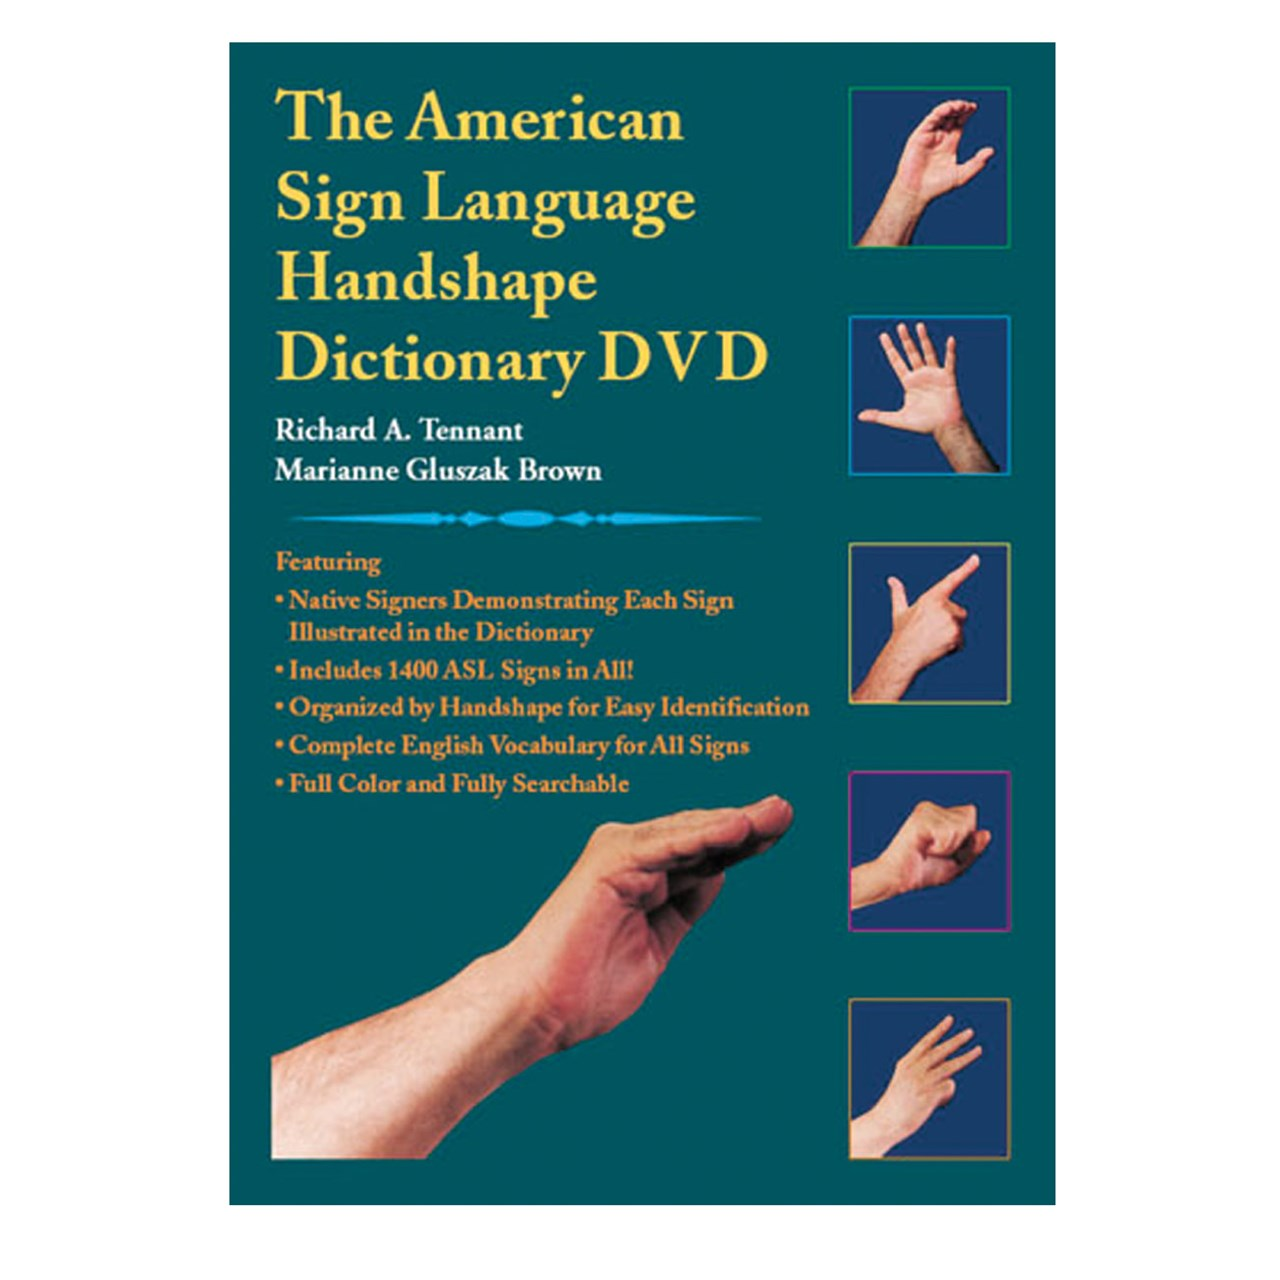 The american sign language dictionary 10th anniversary edition